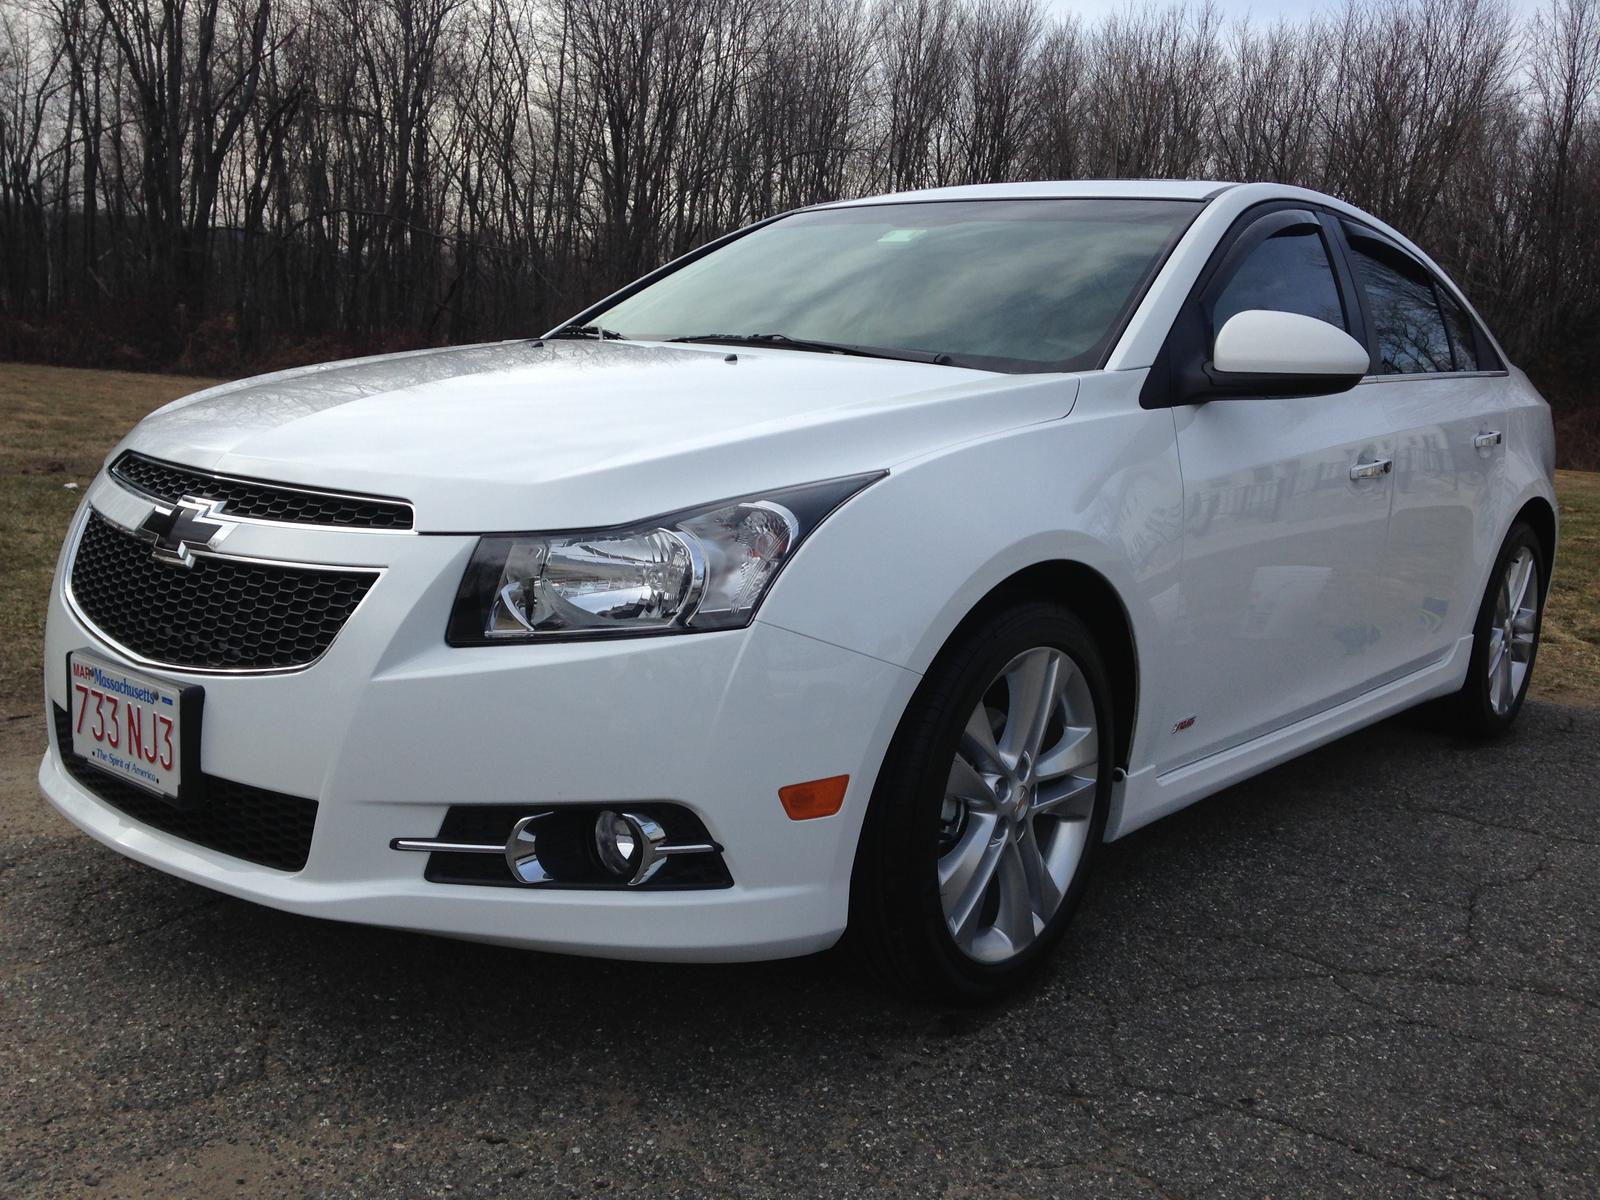 2014 Cruze LTZ RS package black or white Page 3